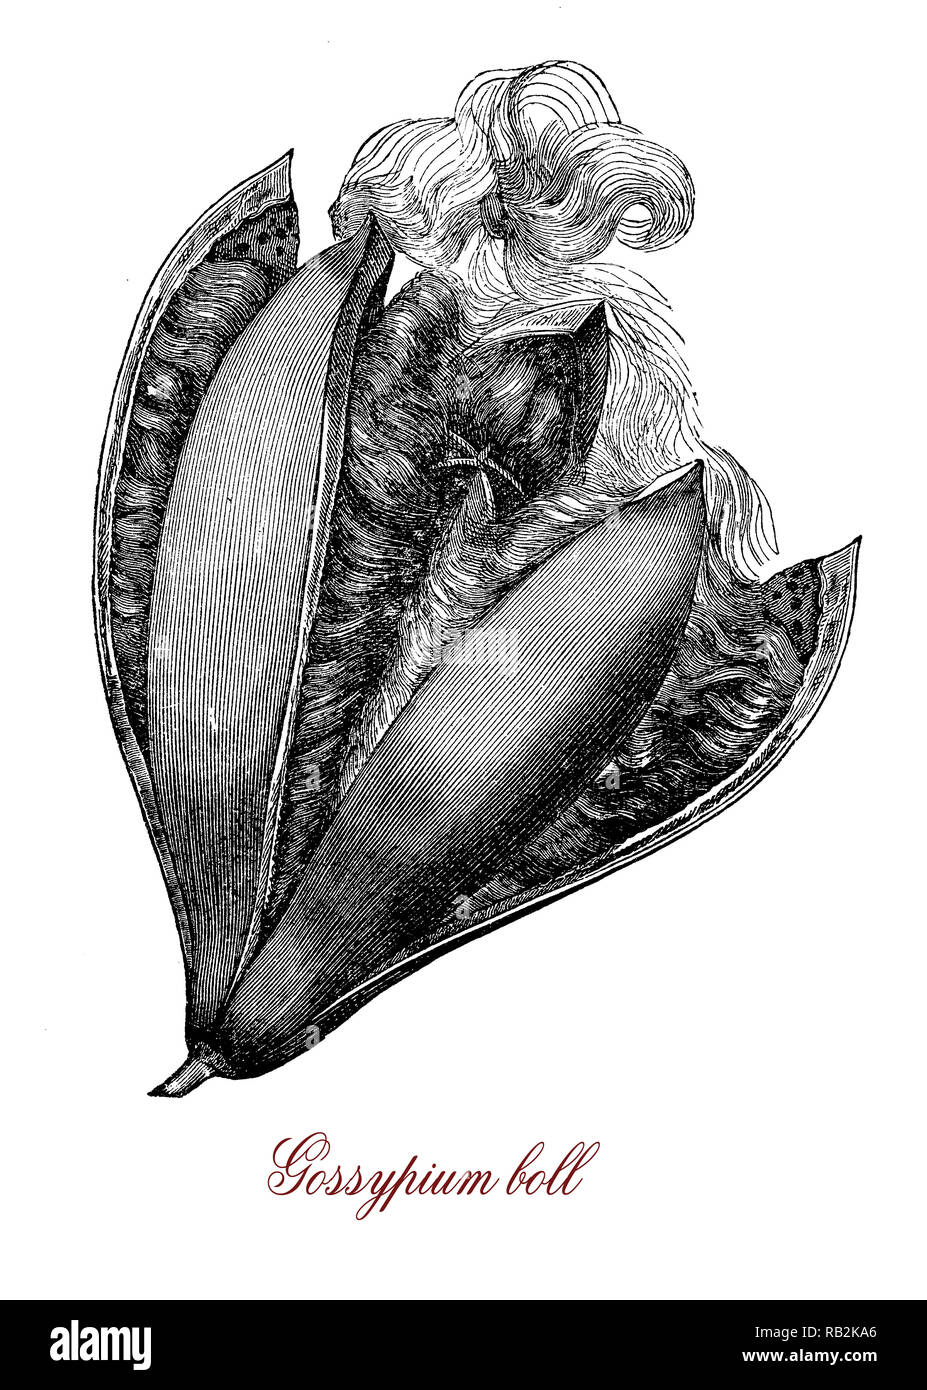 Gossypium is flowering plant  from which cotton is harvested. The seeds are contained in a capsule called a boll, each seed surrounded by fibres that are the commercially interested part of the plant.Vintage engraving. - Stock Image